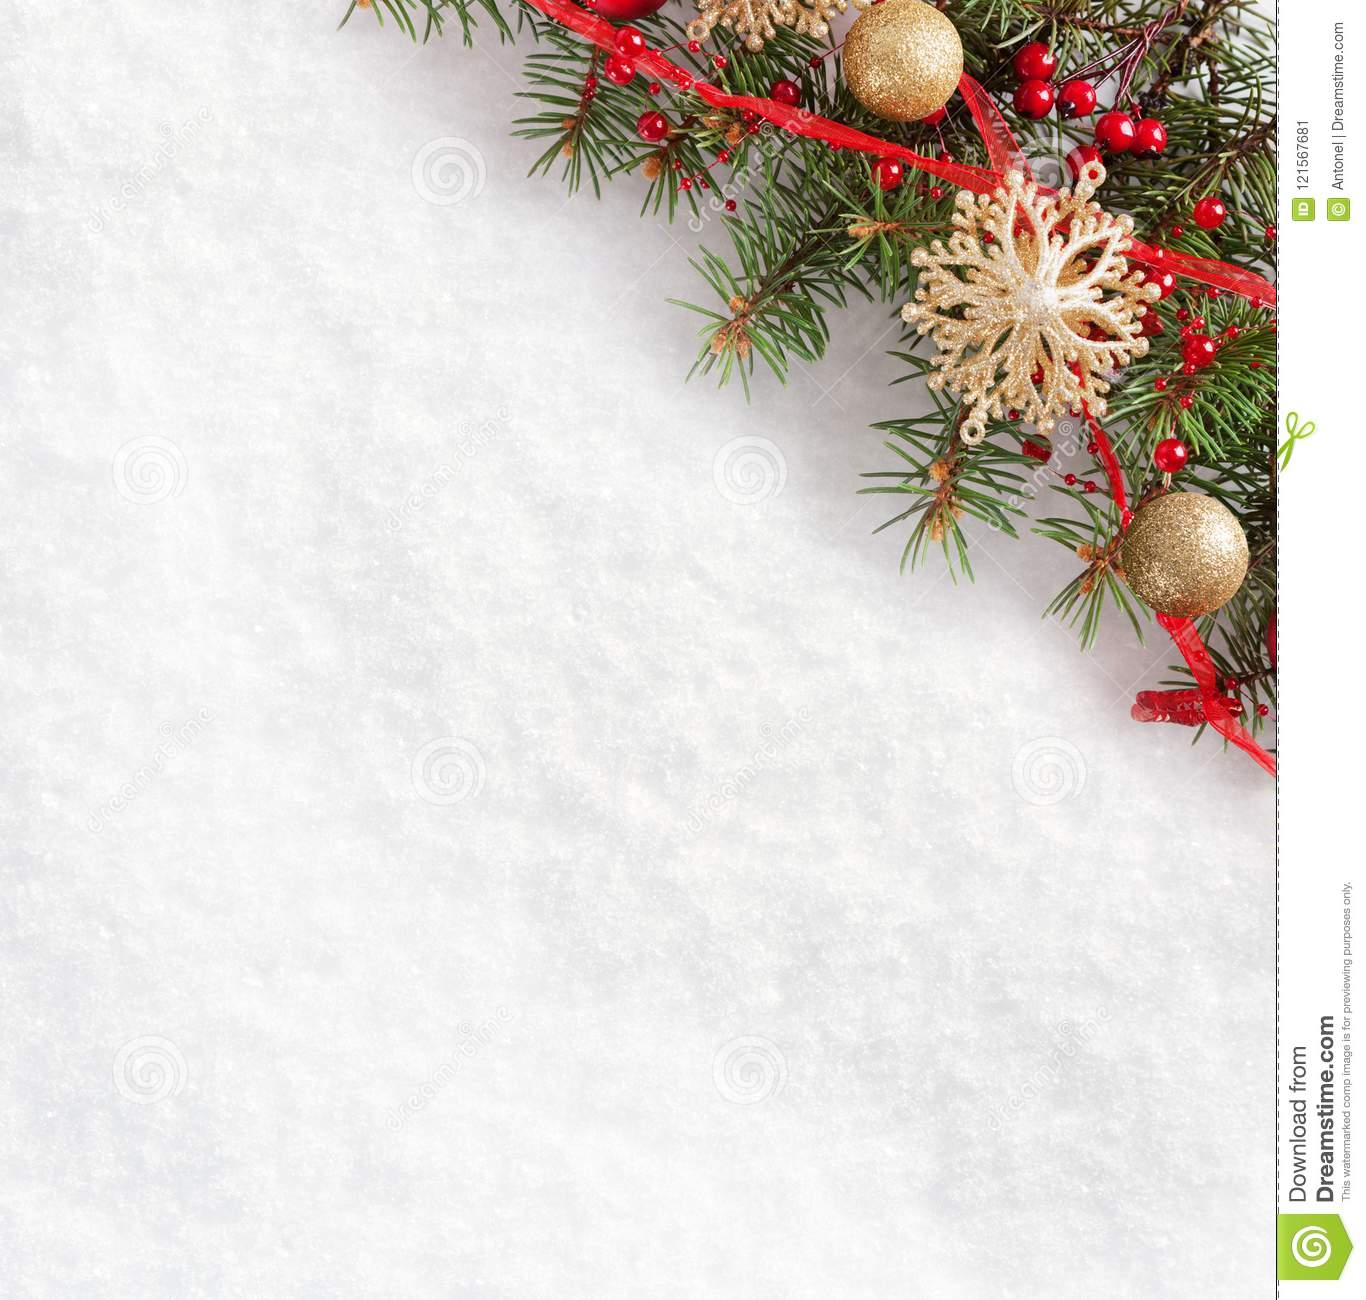 Fir Branch With Christmas Decorations On The Background Of